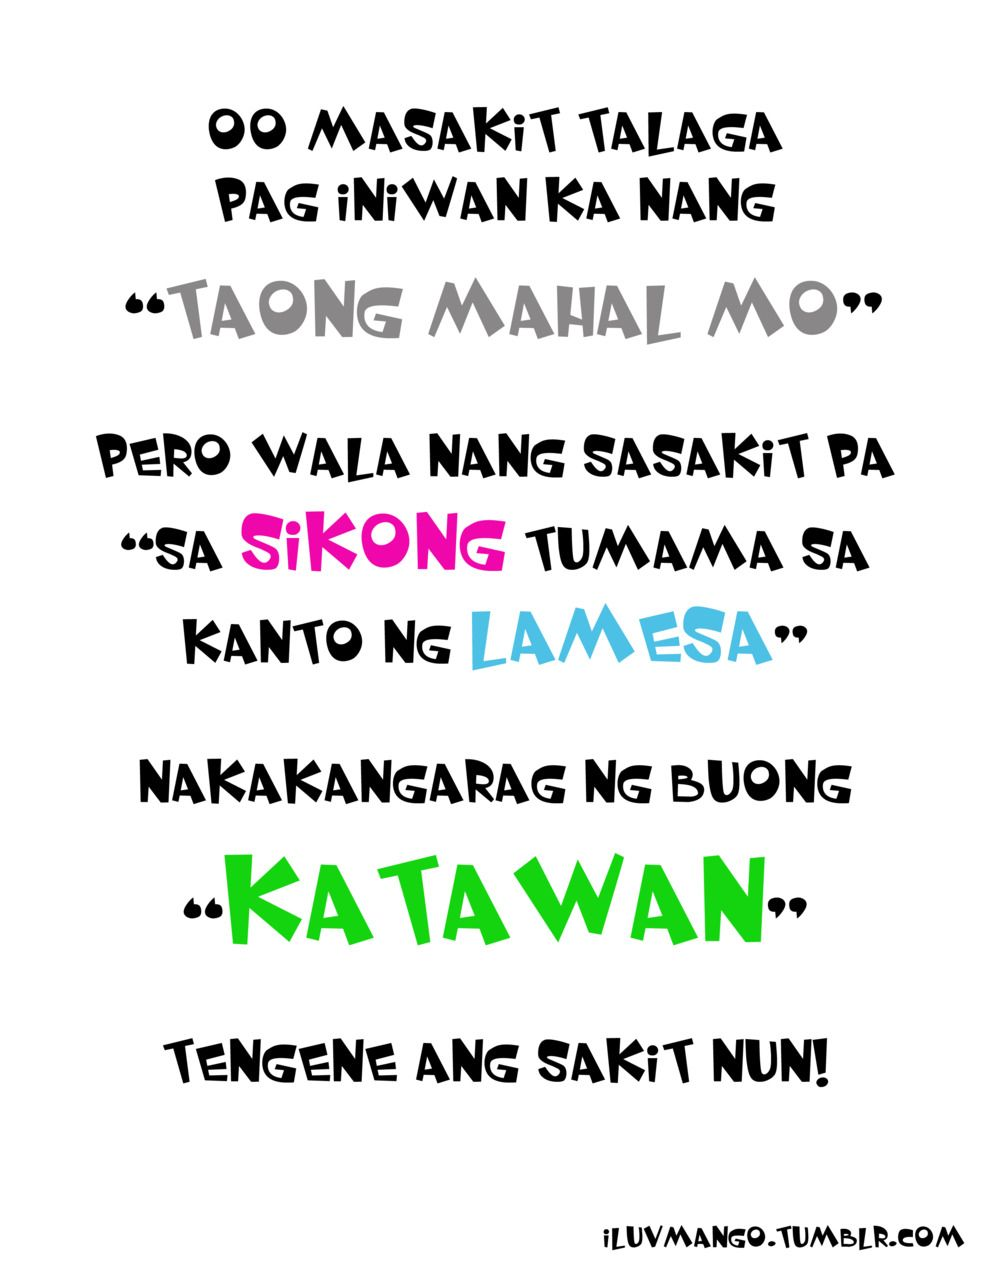 Tagalog Funny Love Quotes Tumblr  Images In Love Quotes Love Quotes Tumblr Funny